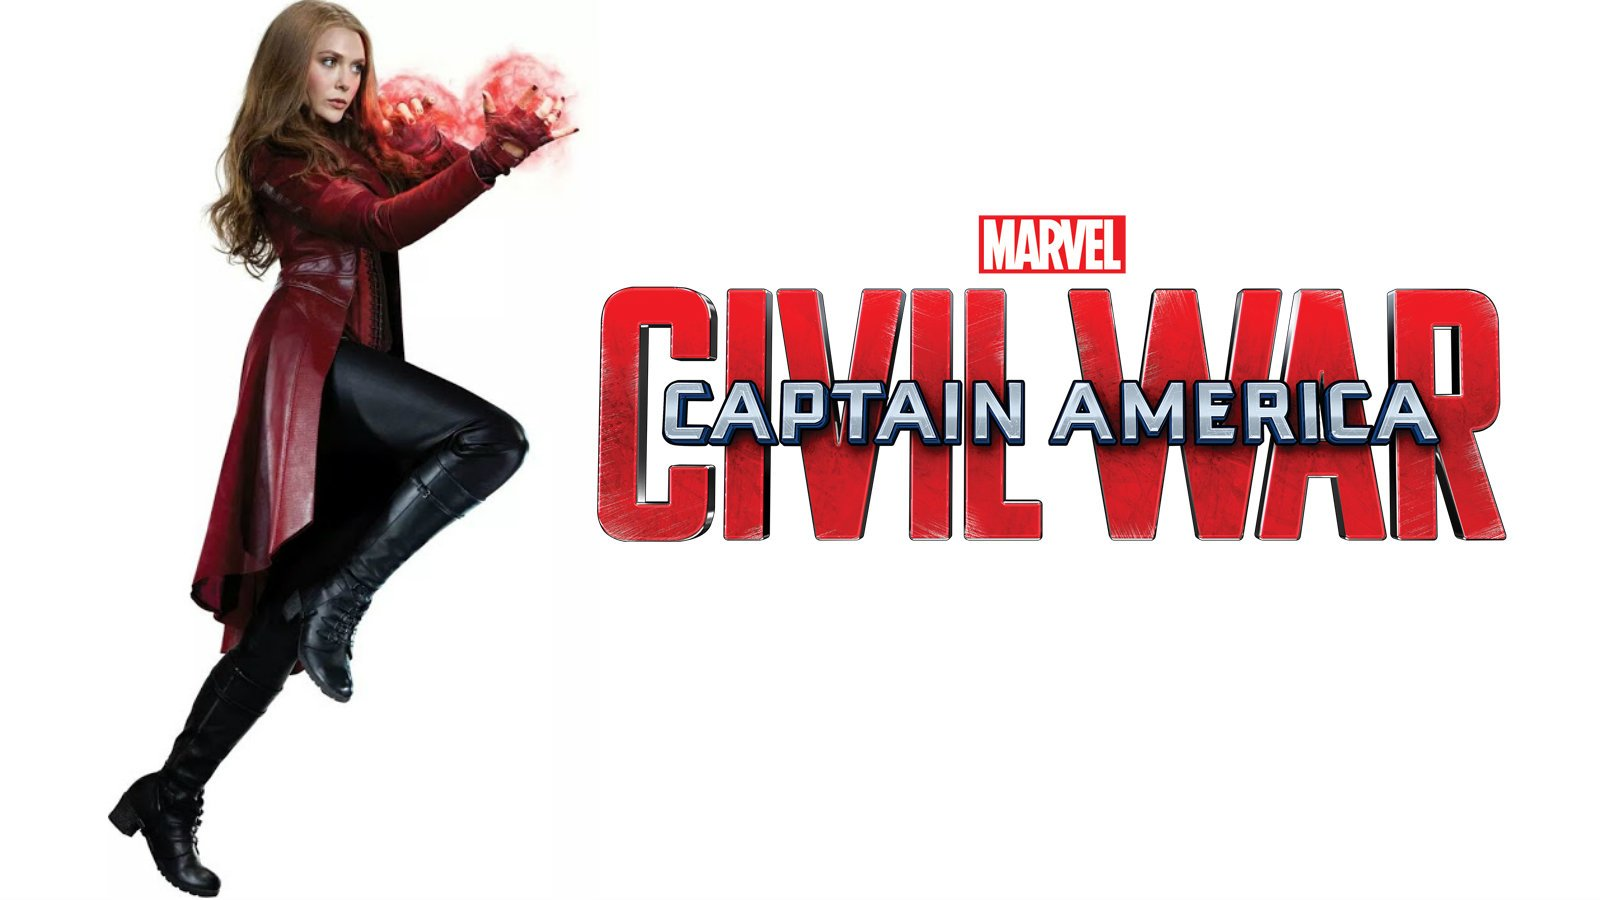 War images Scarlet Witch HD wallpaper and background photos 39434678 1600x900